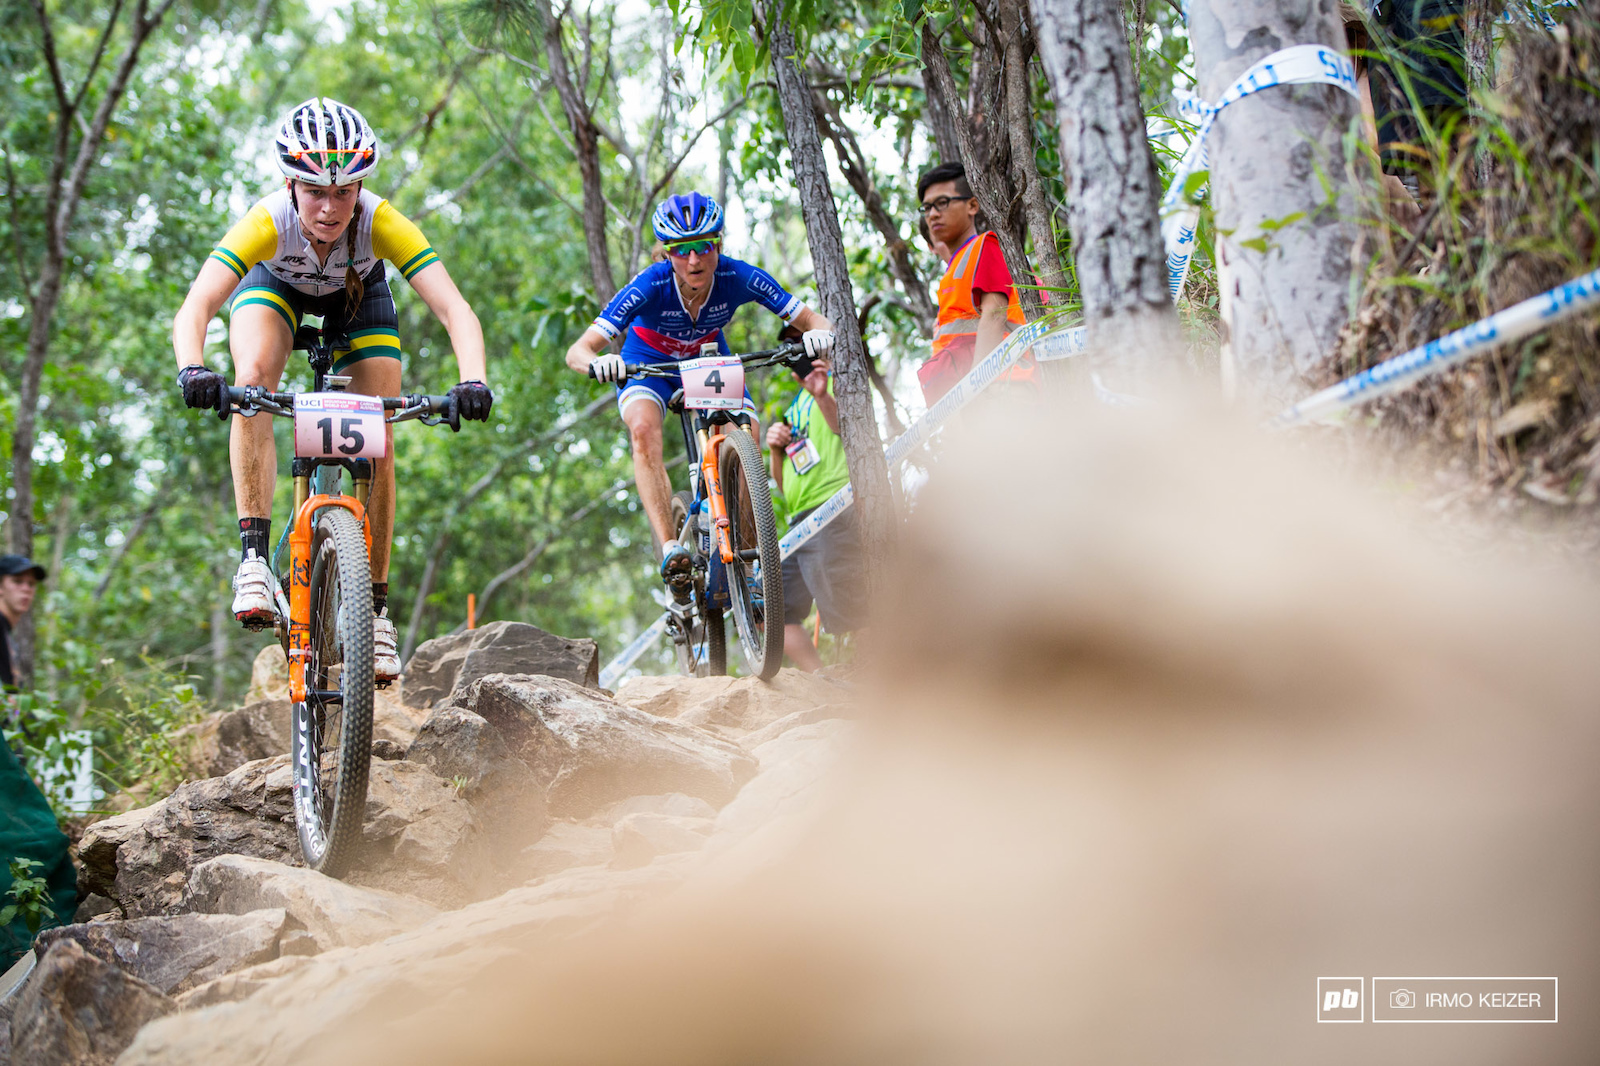 Bec Henderson was poised for a good result in Cairns. In pursuit of Annika Langvad followed closely by Catharine Pendrel.